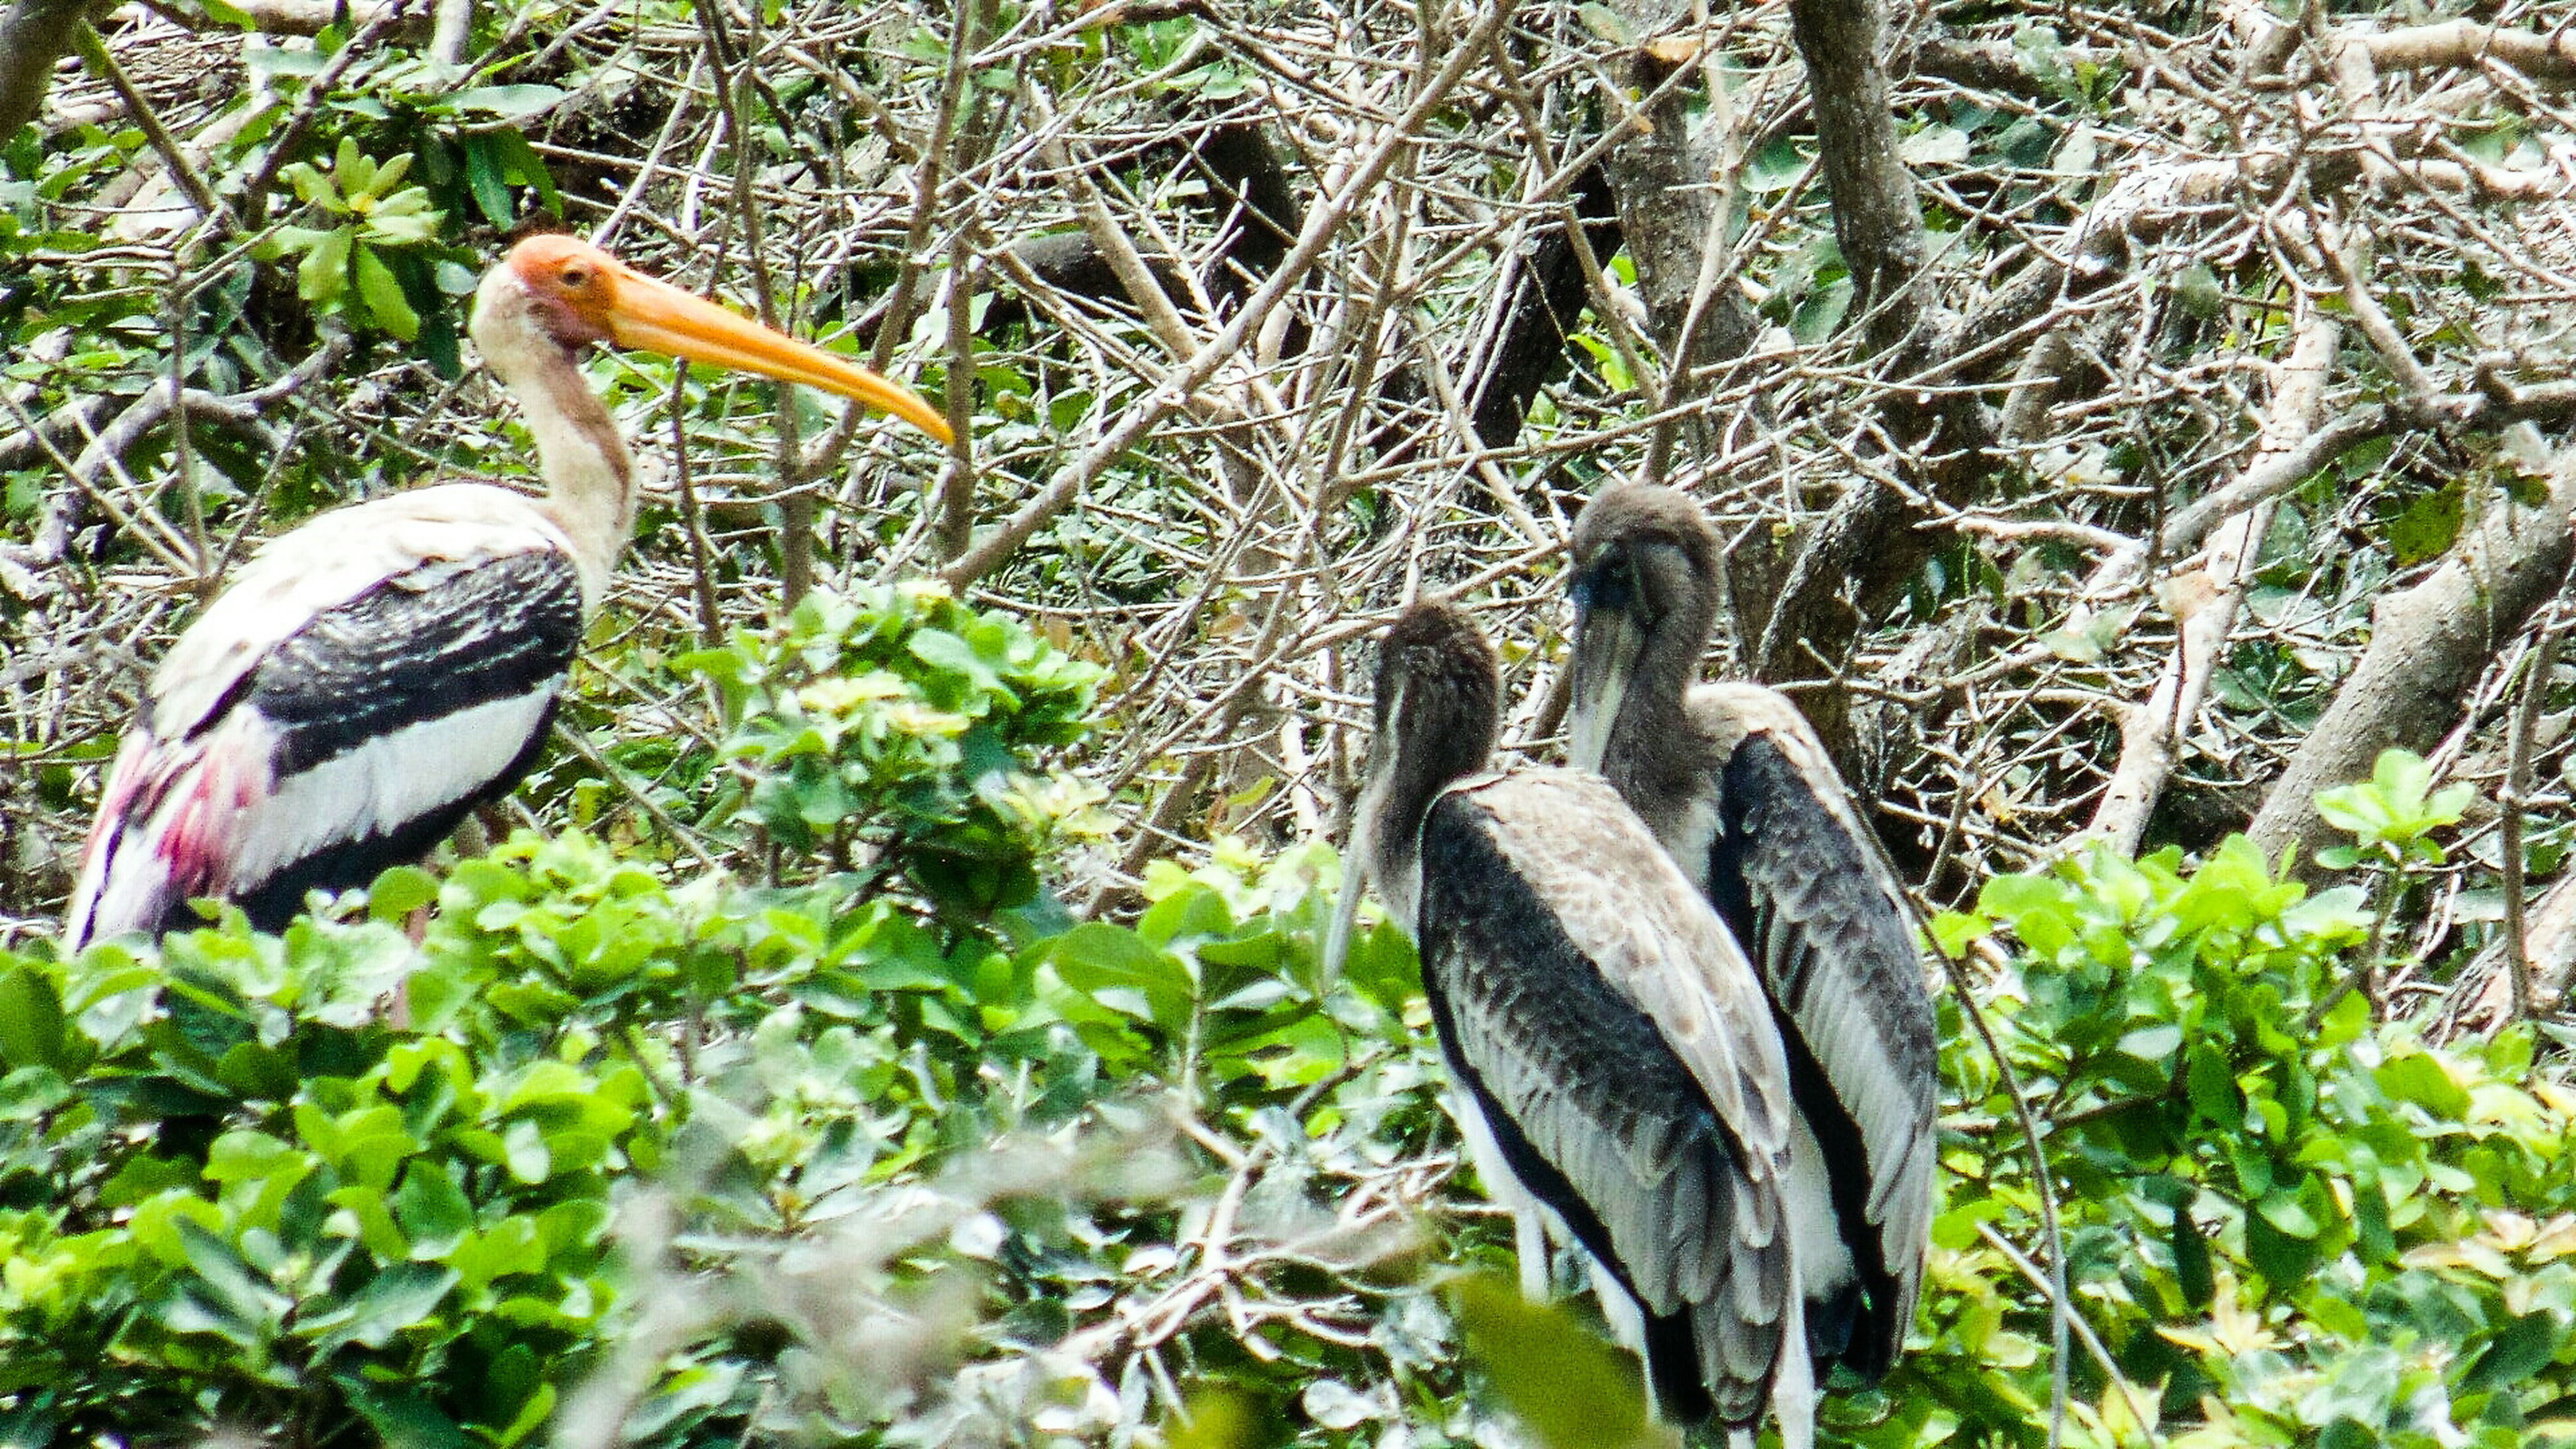 animals in the wild, animal themes, bird, wildlife, tree, perching, one animal, branch, nature, plant, day, green color, outdoors, two animals, full length, growth, no people, low angle view, beak, avian